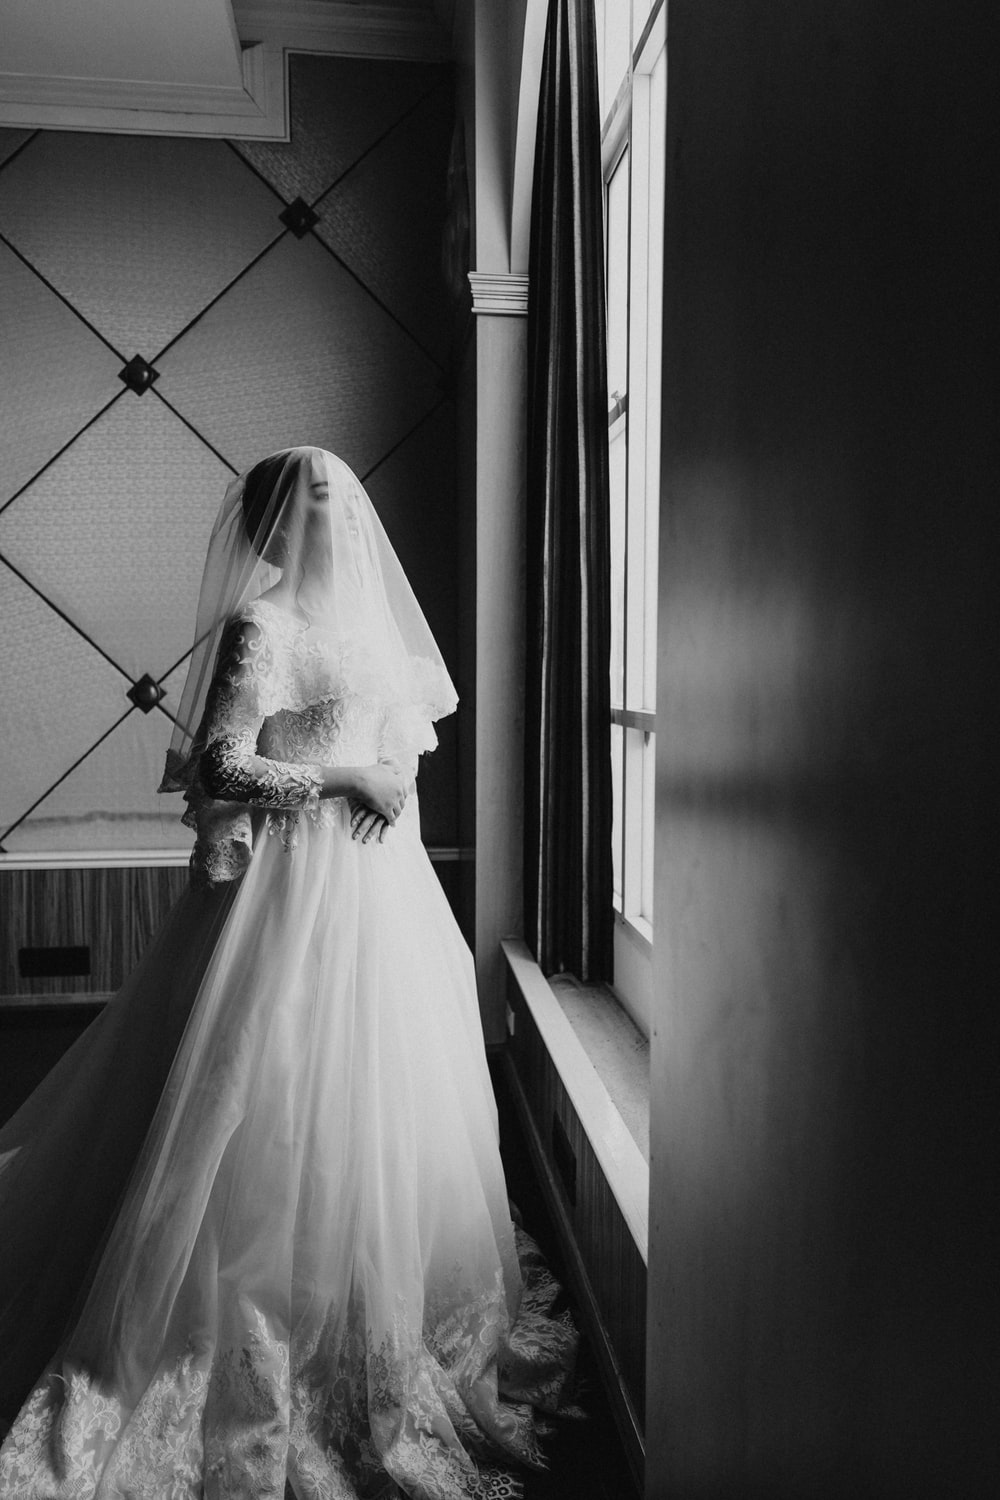 woman in white wedding dress